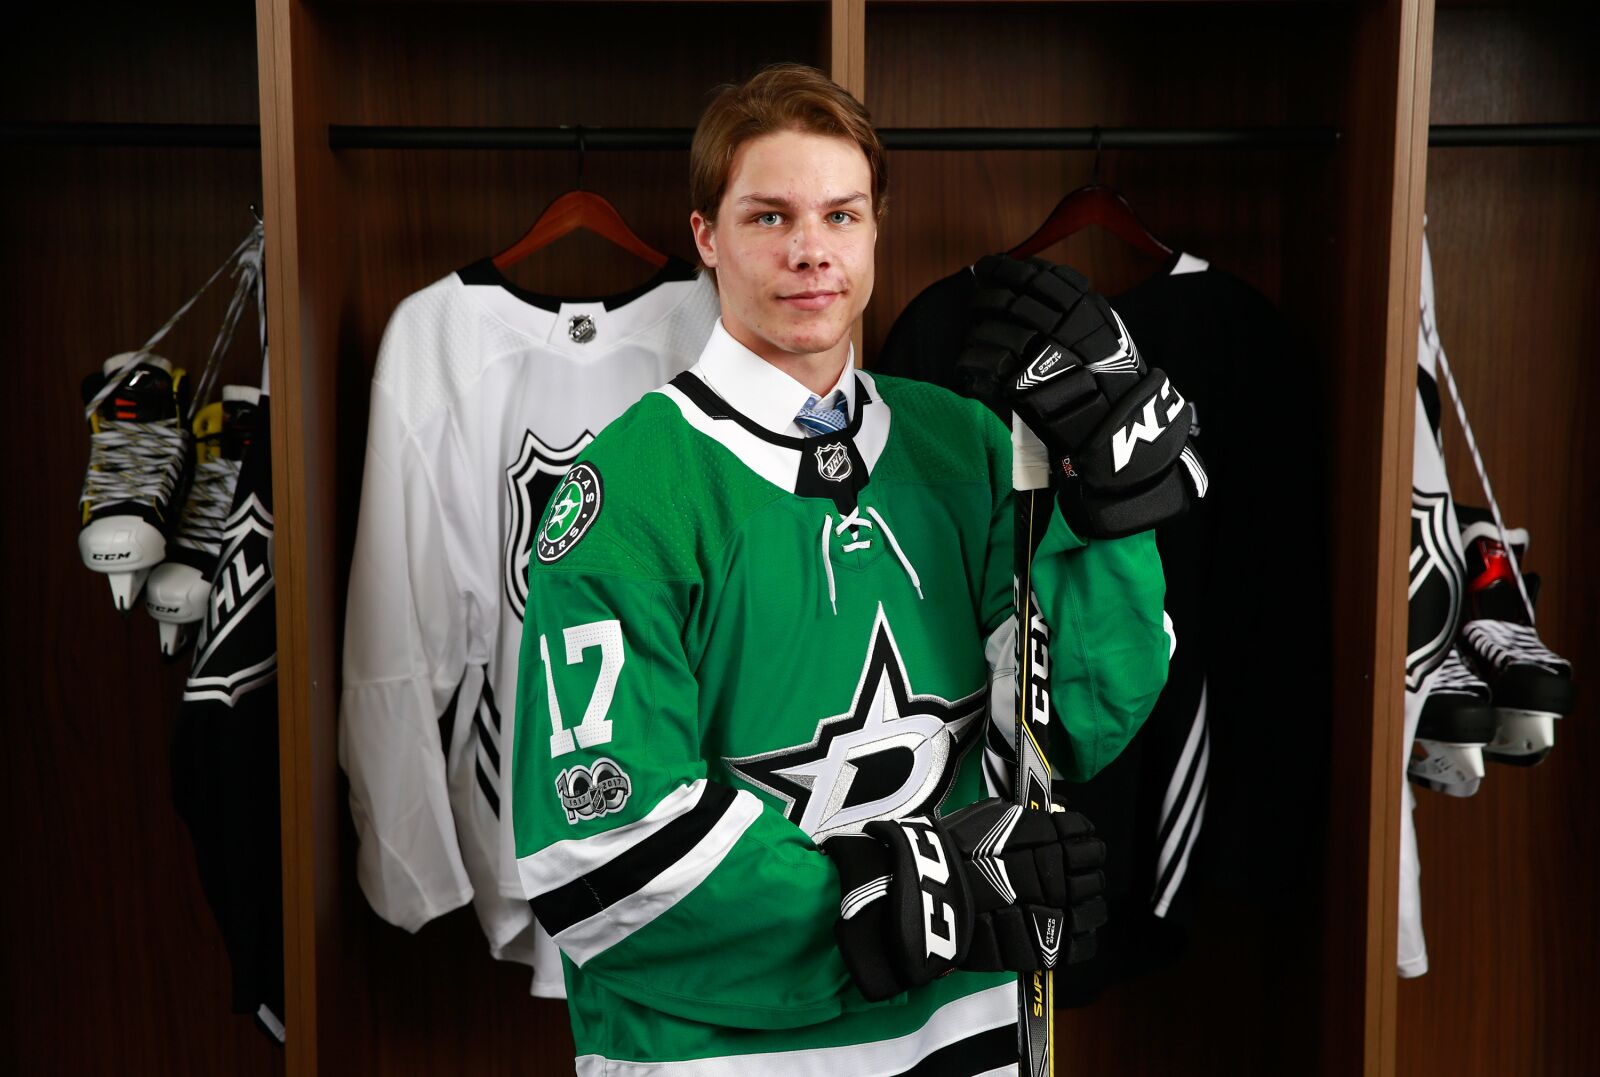 801429788-2017-nhl-draft-portraits.jpg